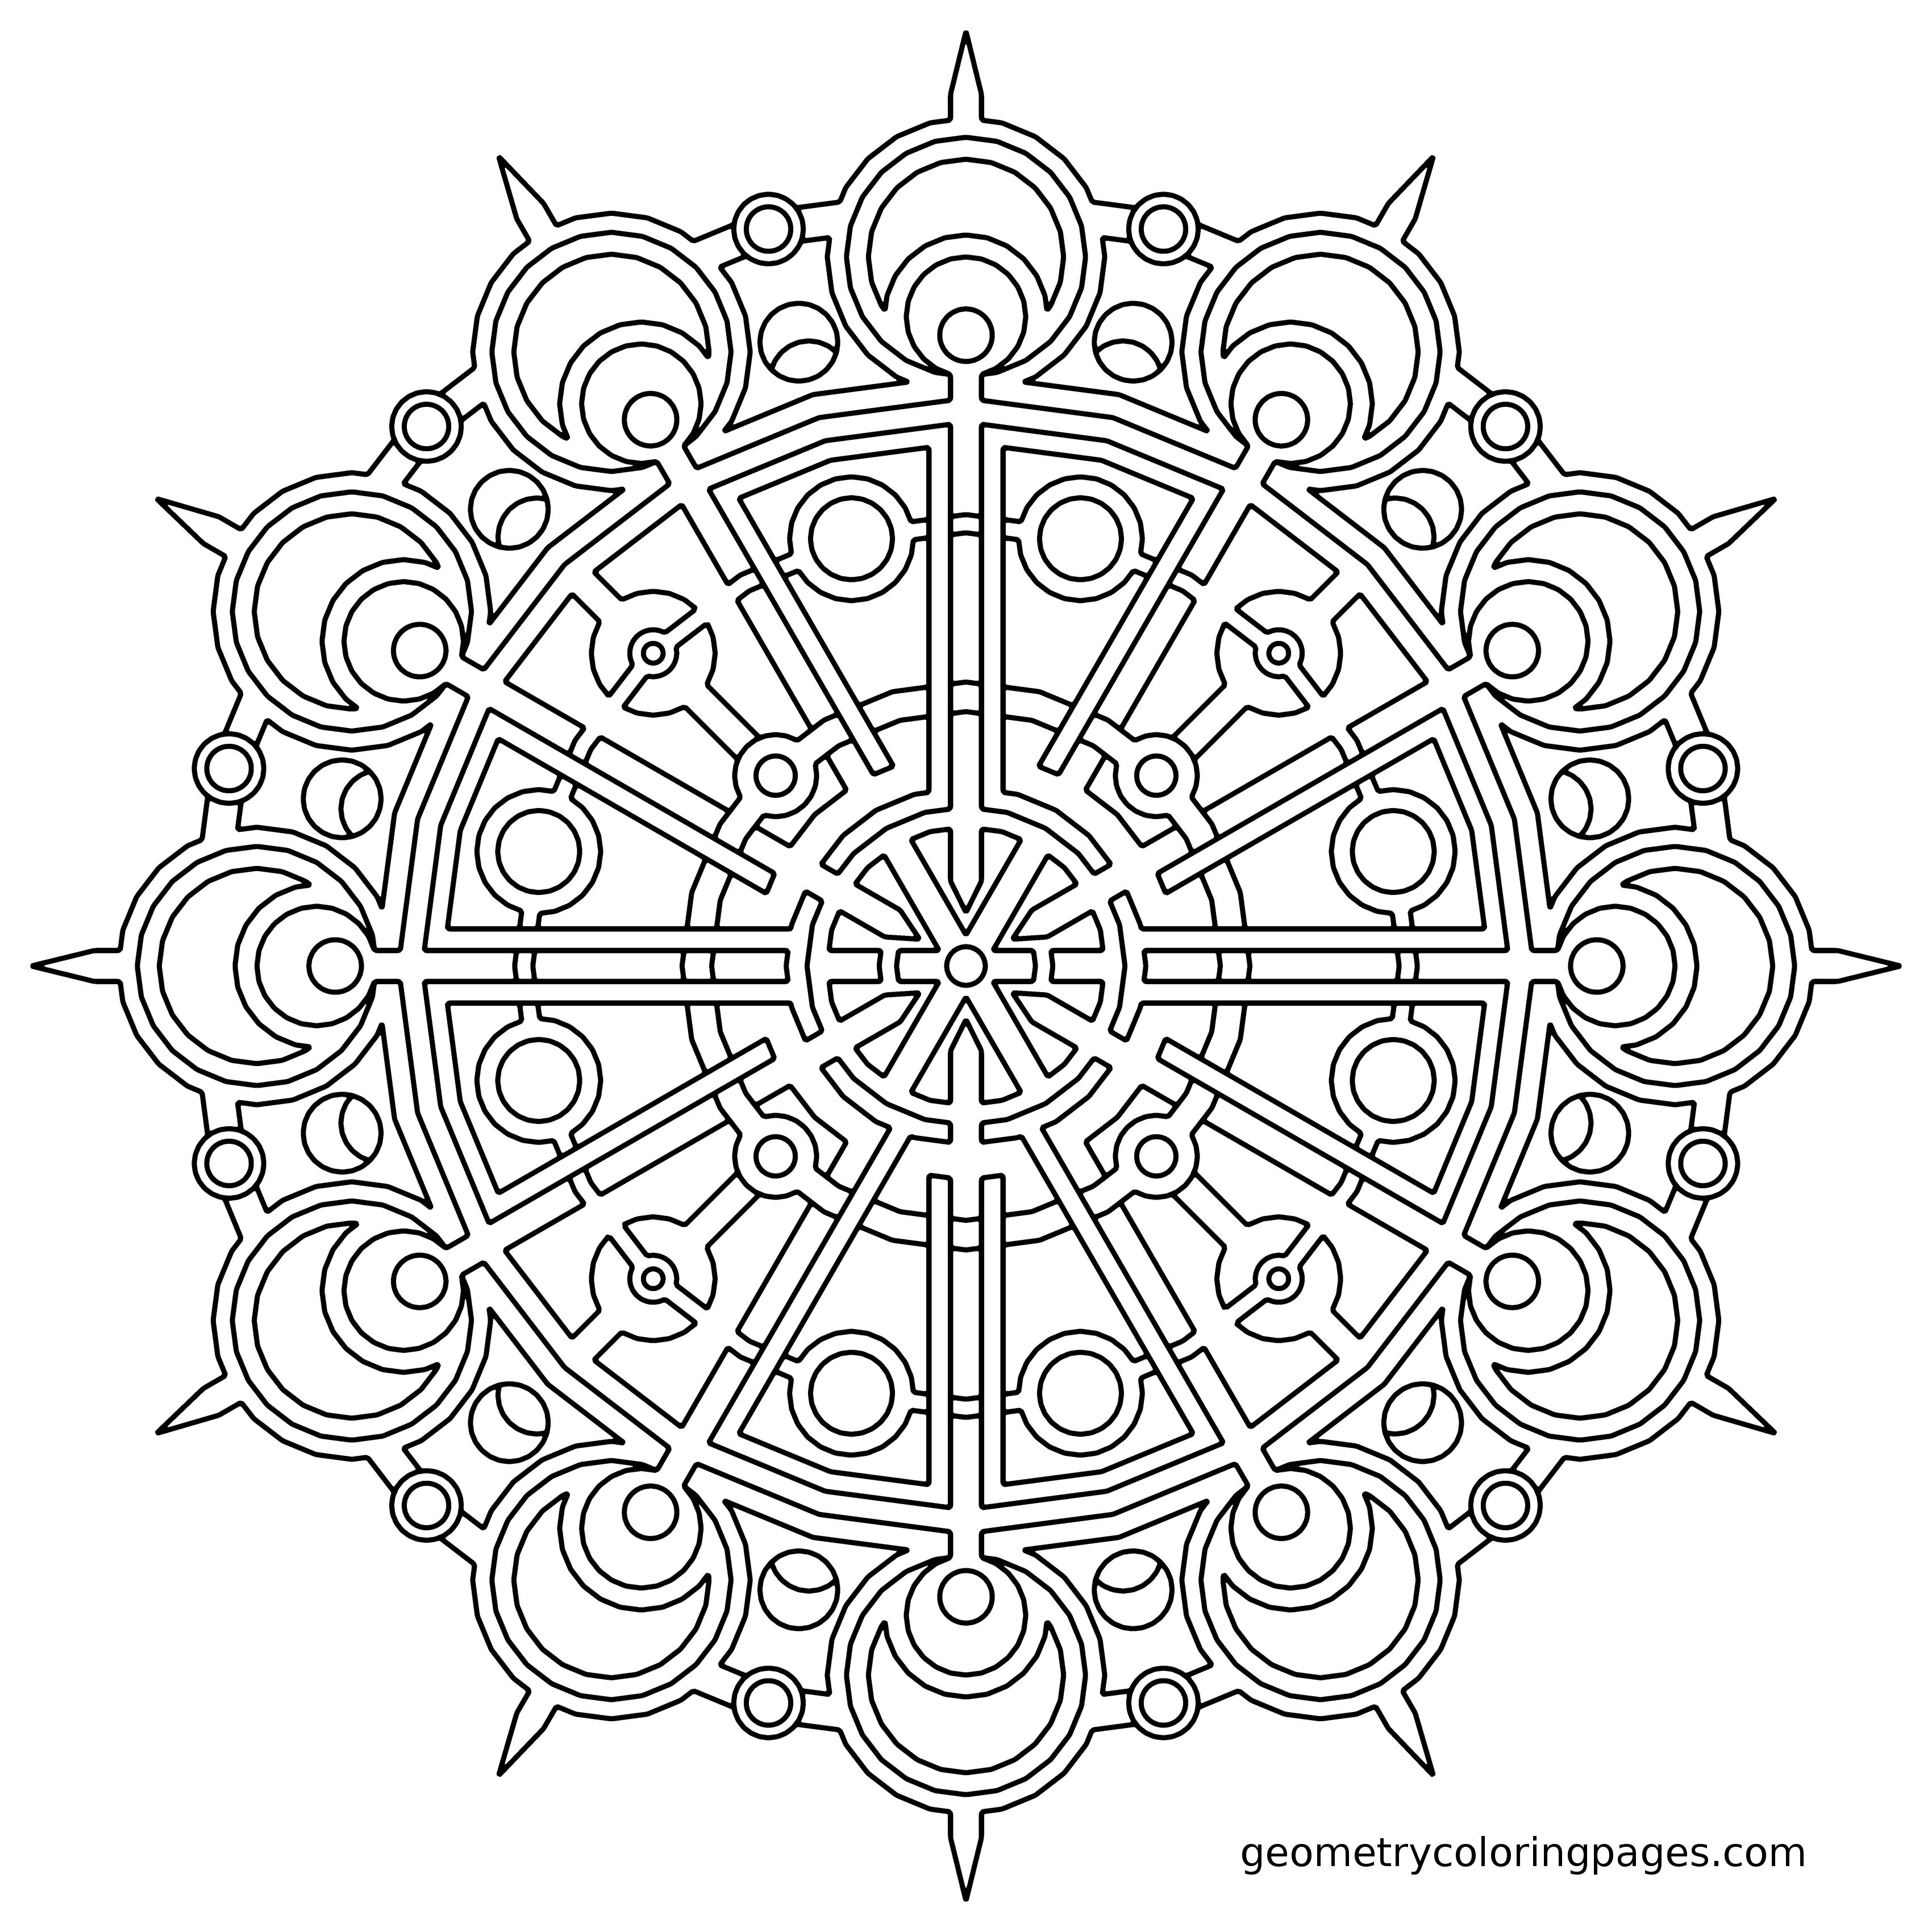 3400x3400 Best Of Mandala Coloring Pages Mandaly